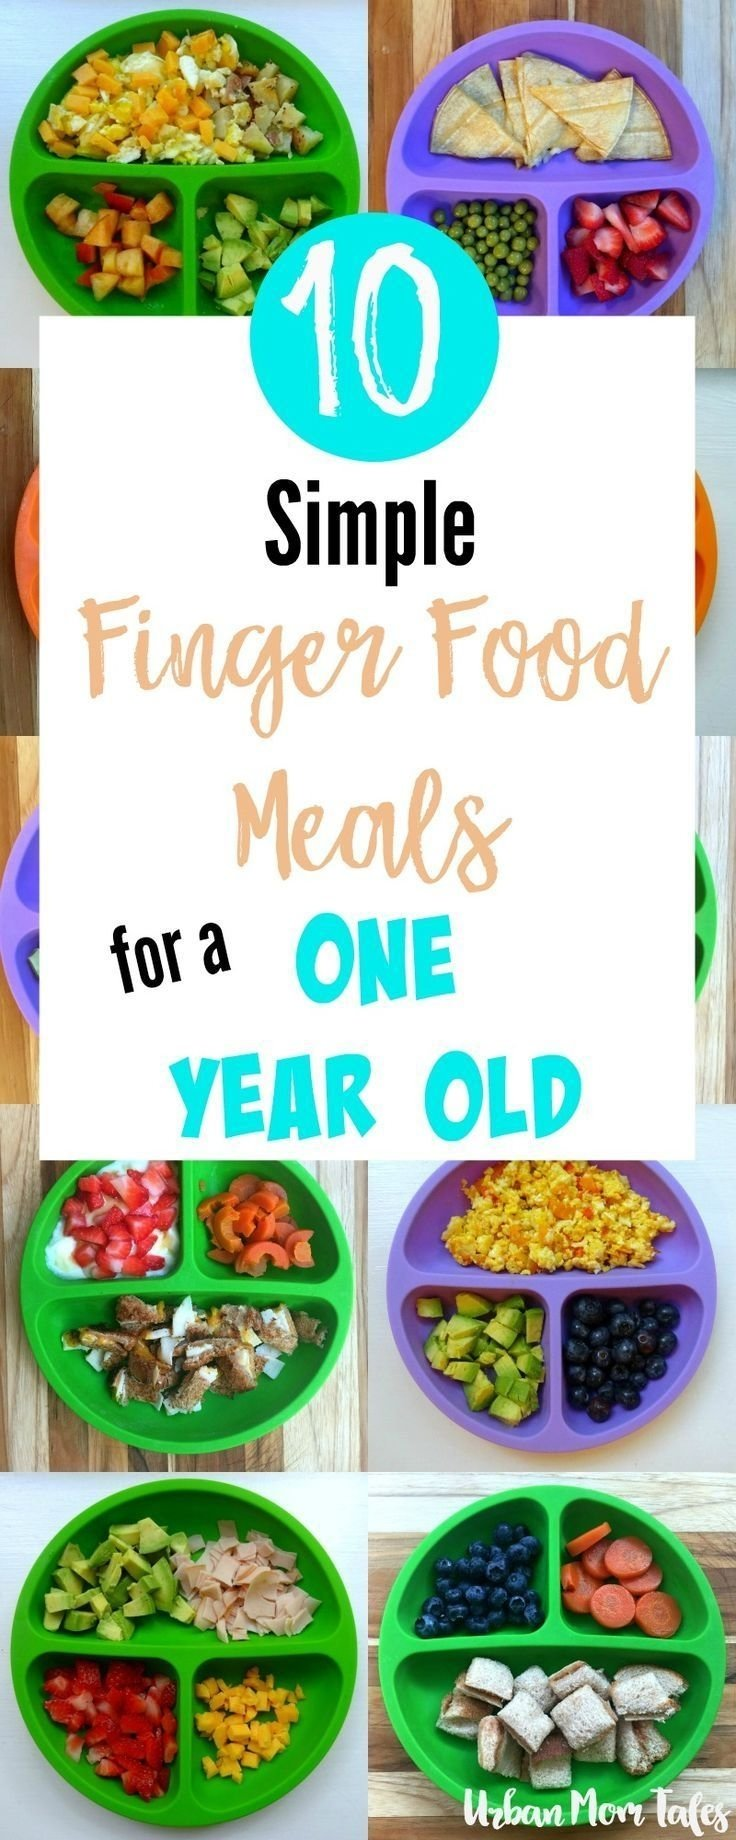 10 Elegant One Year Old Meal Ideas 10 simple finger food meals for a one year old 2020